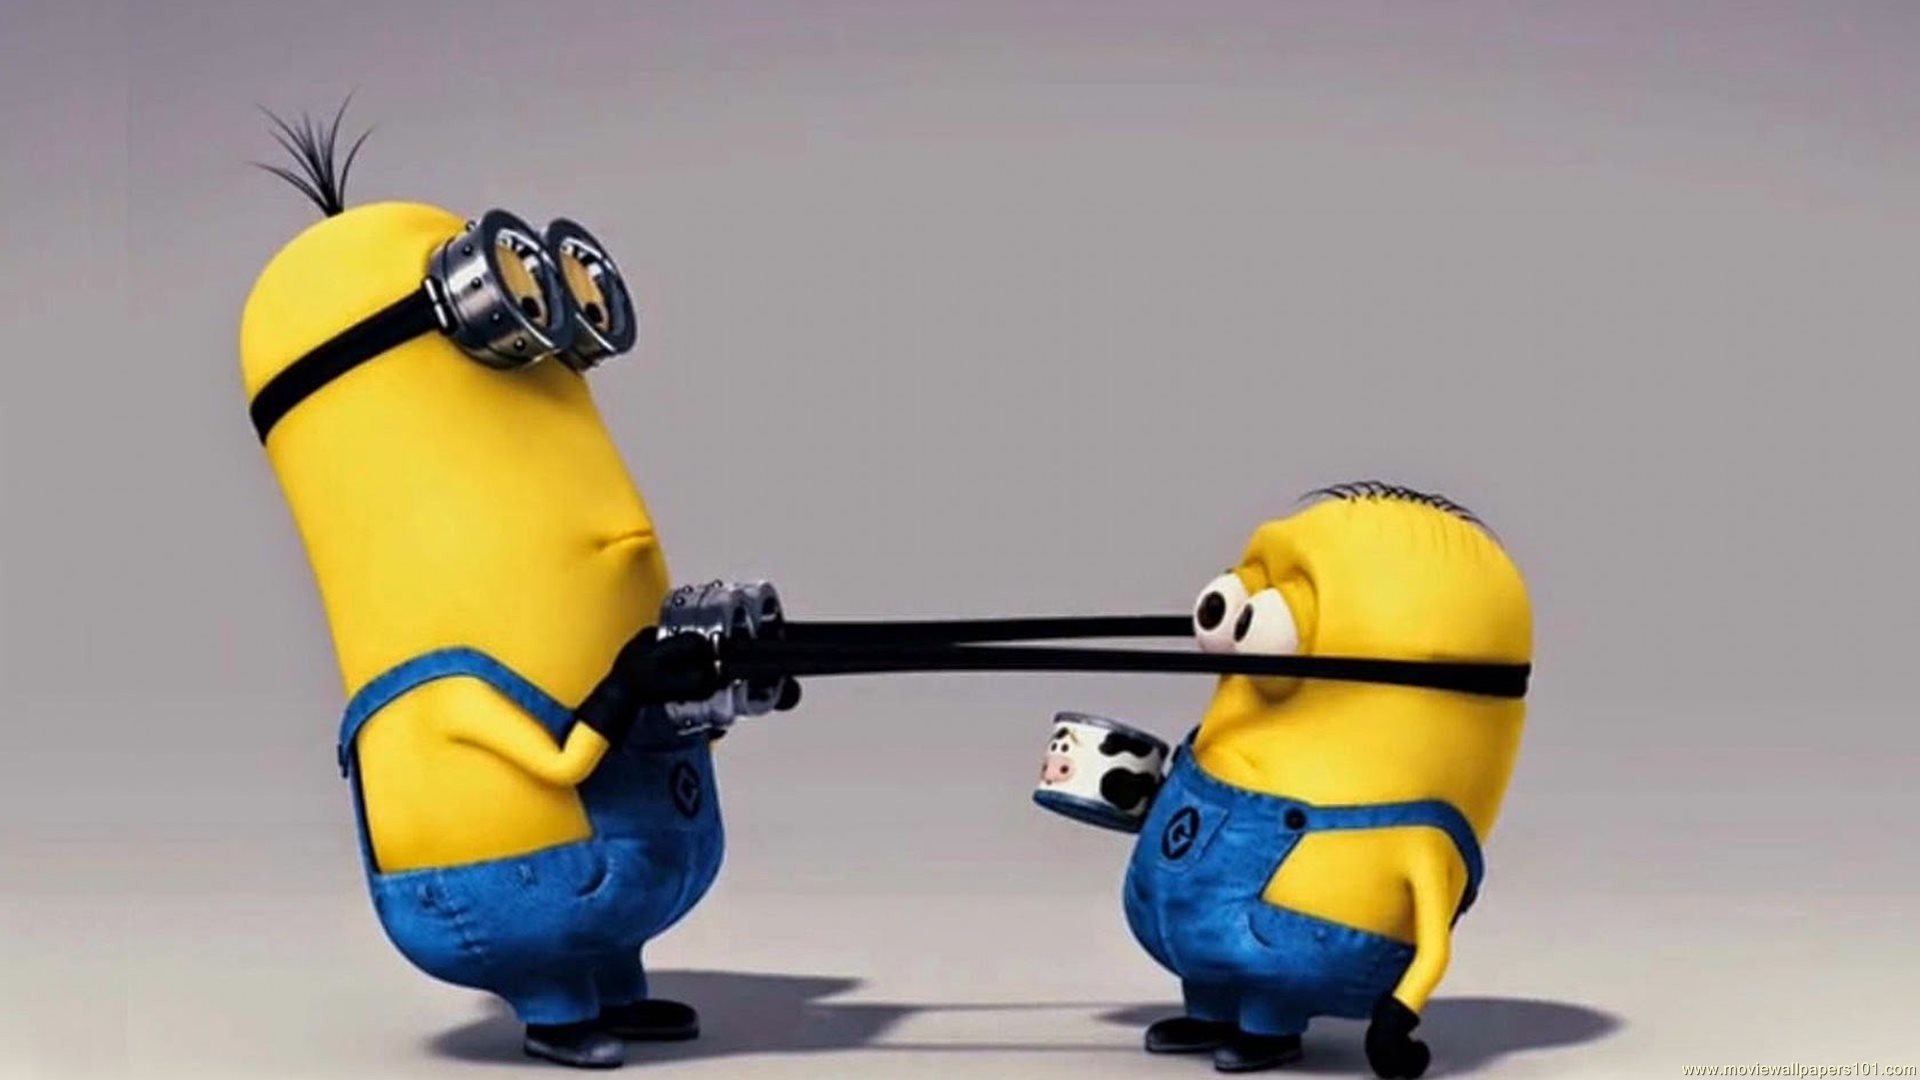 1920x1080 Download Minions Kevin And Bob Funny Cartoon HD Wallpaper. Search more .